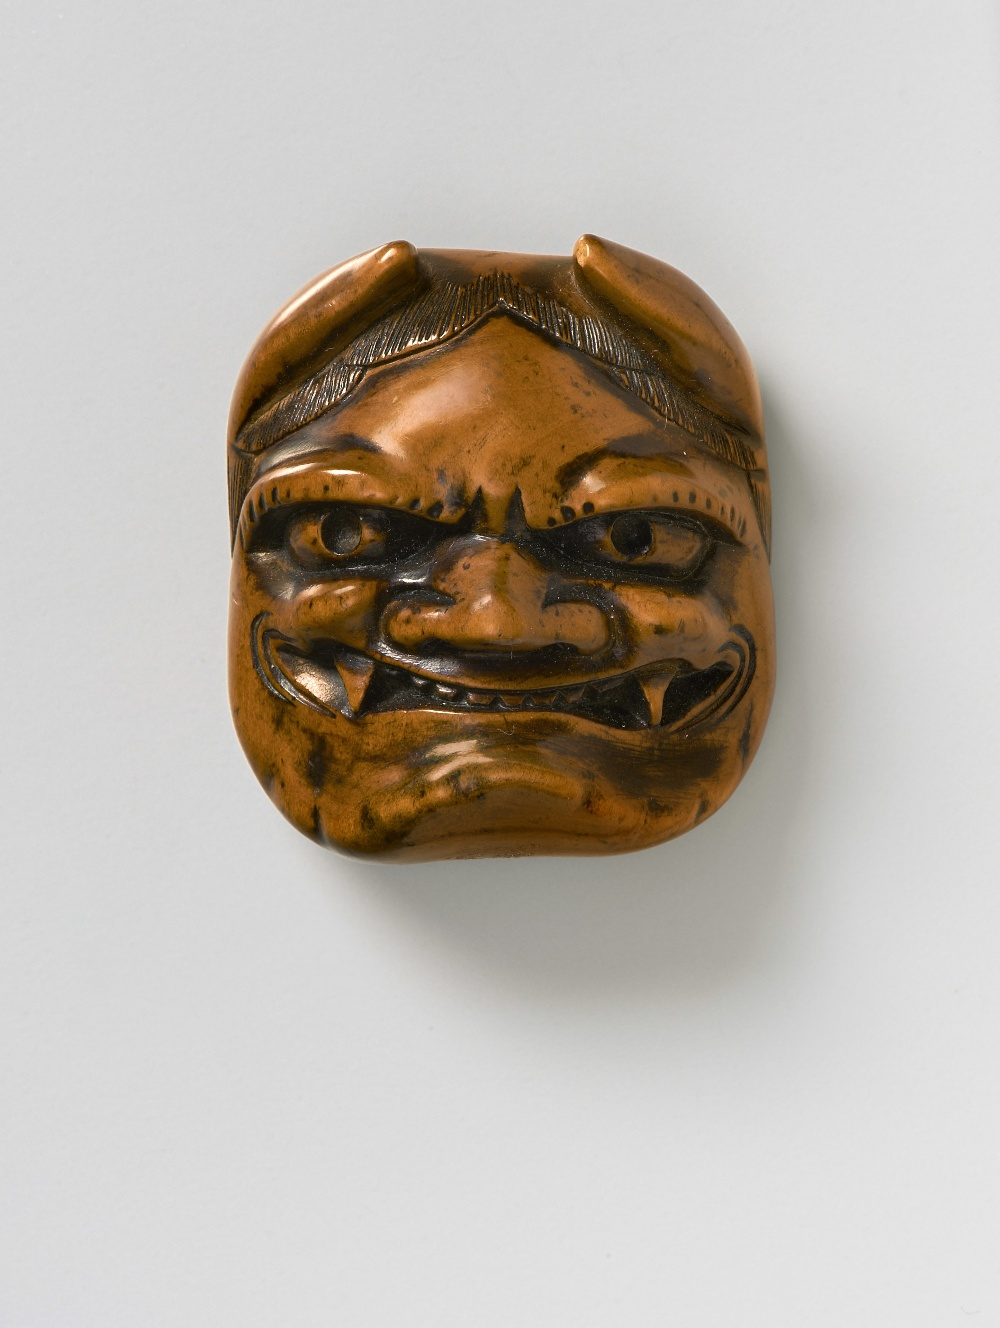 boxwood-mask-netsuke-oni-mr2378